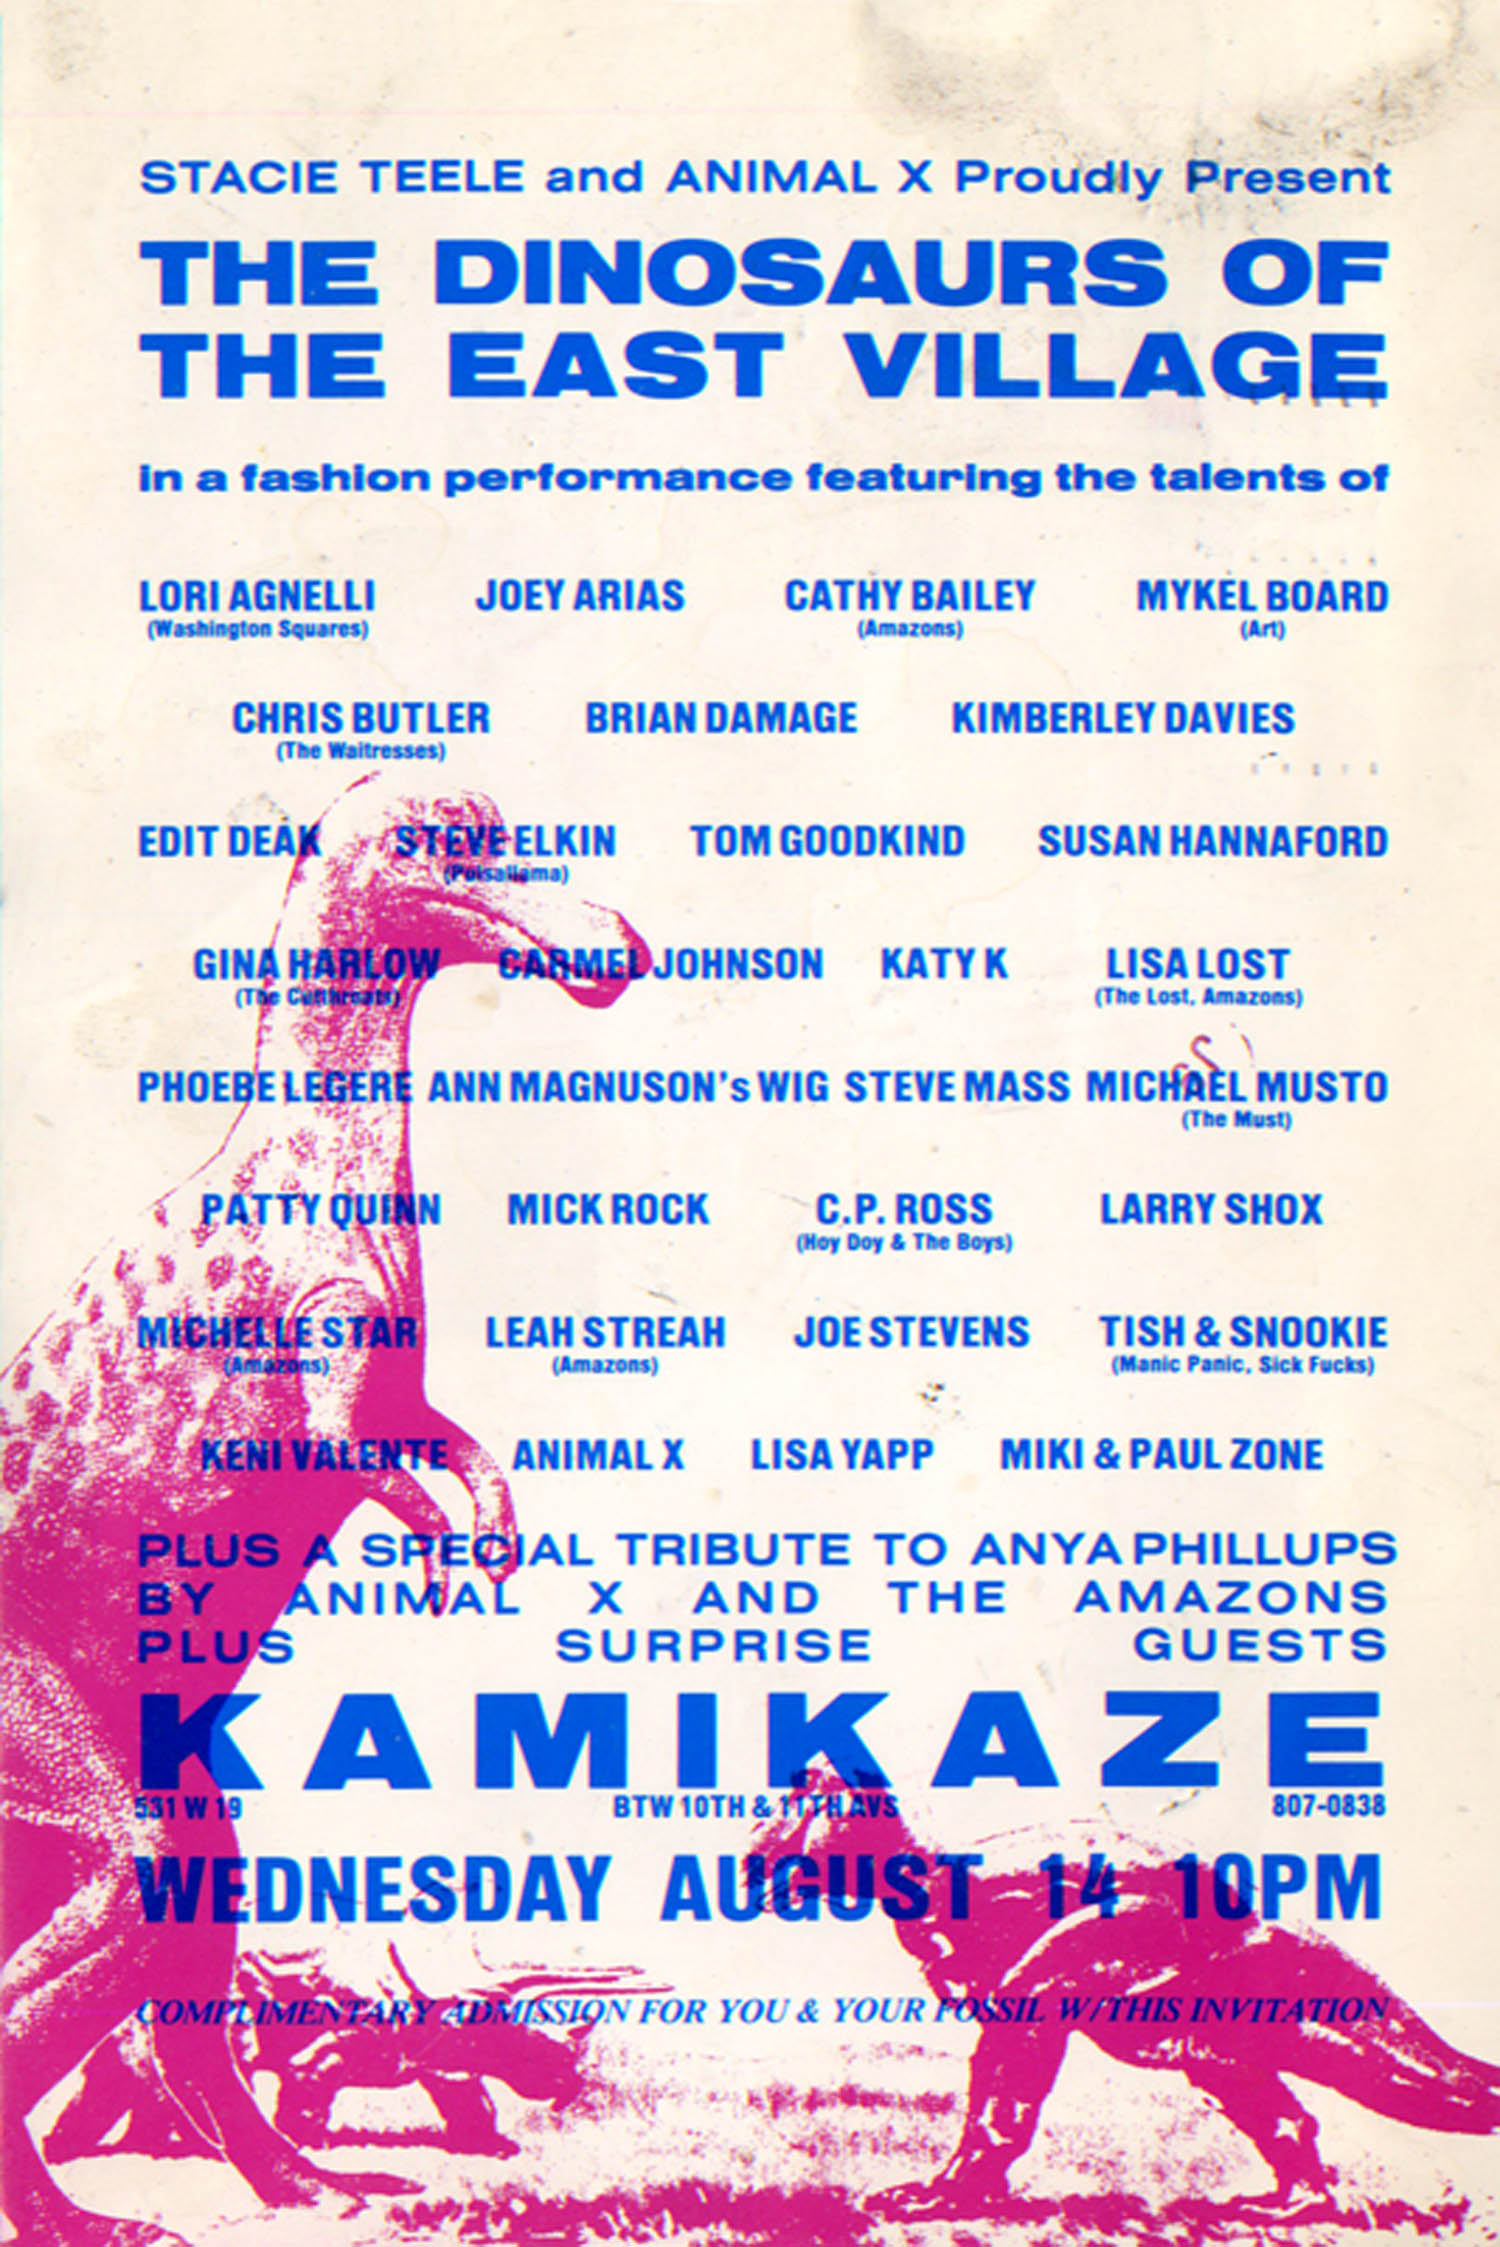 Kamikaze, Dinosaurs of the East Village Art Exhibition And Anya Phillips Tribute, Card, 1985